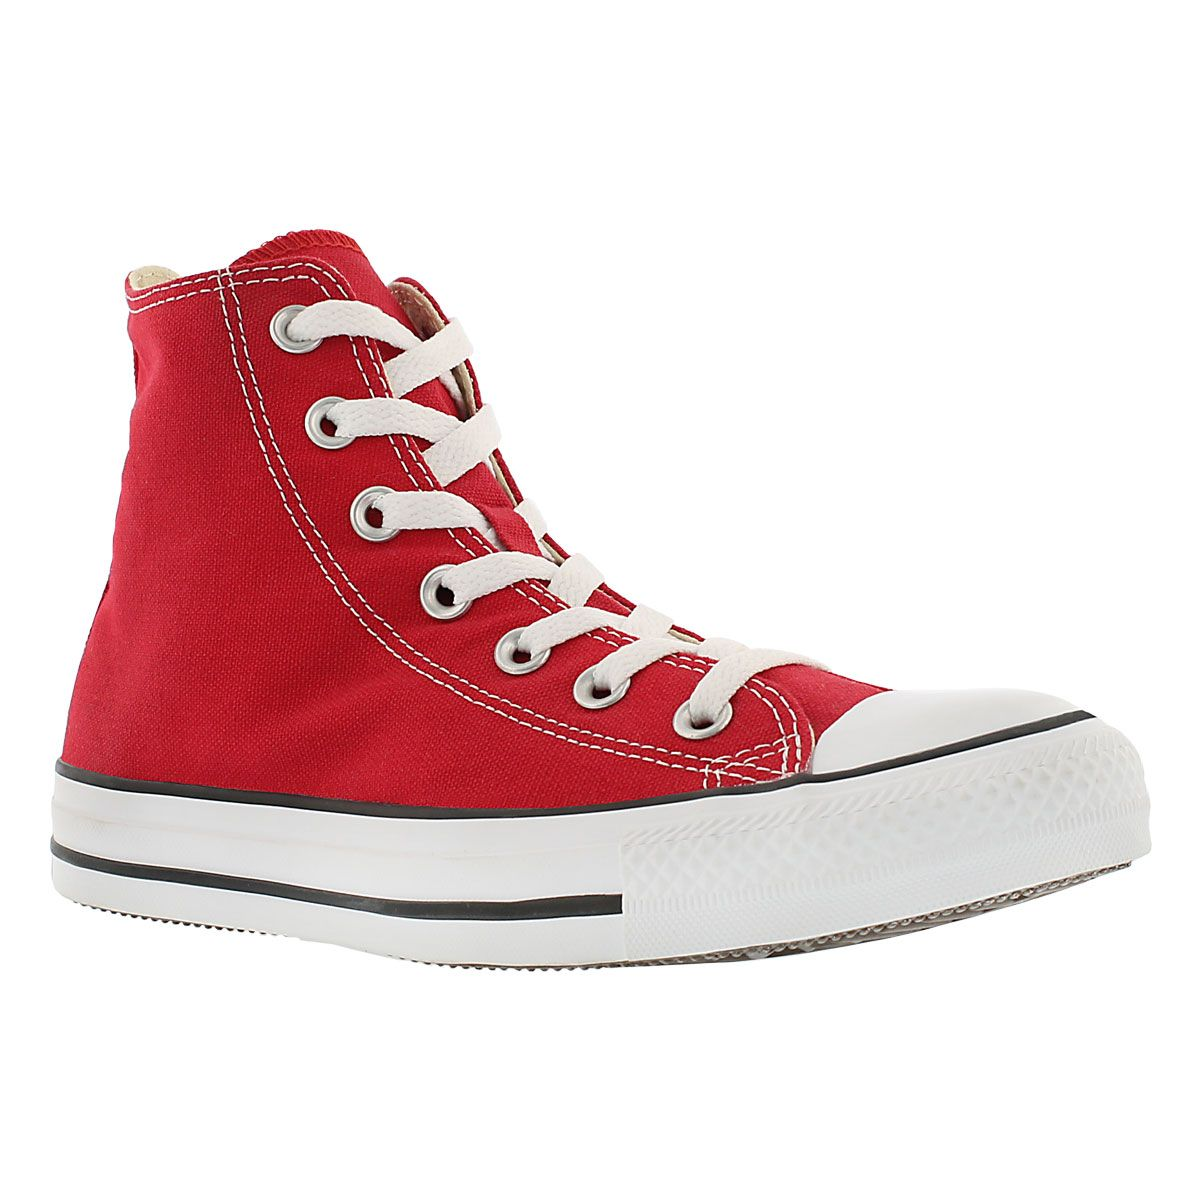 Converse Women's CHUCK TAYLOR CORE HI red sneakers M9621